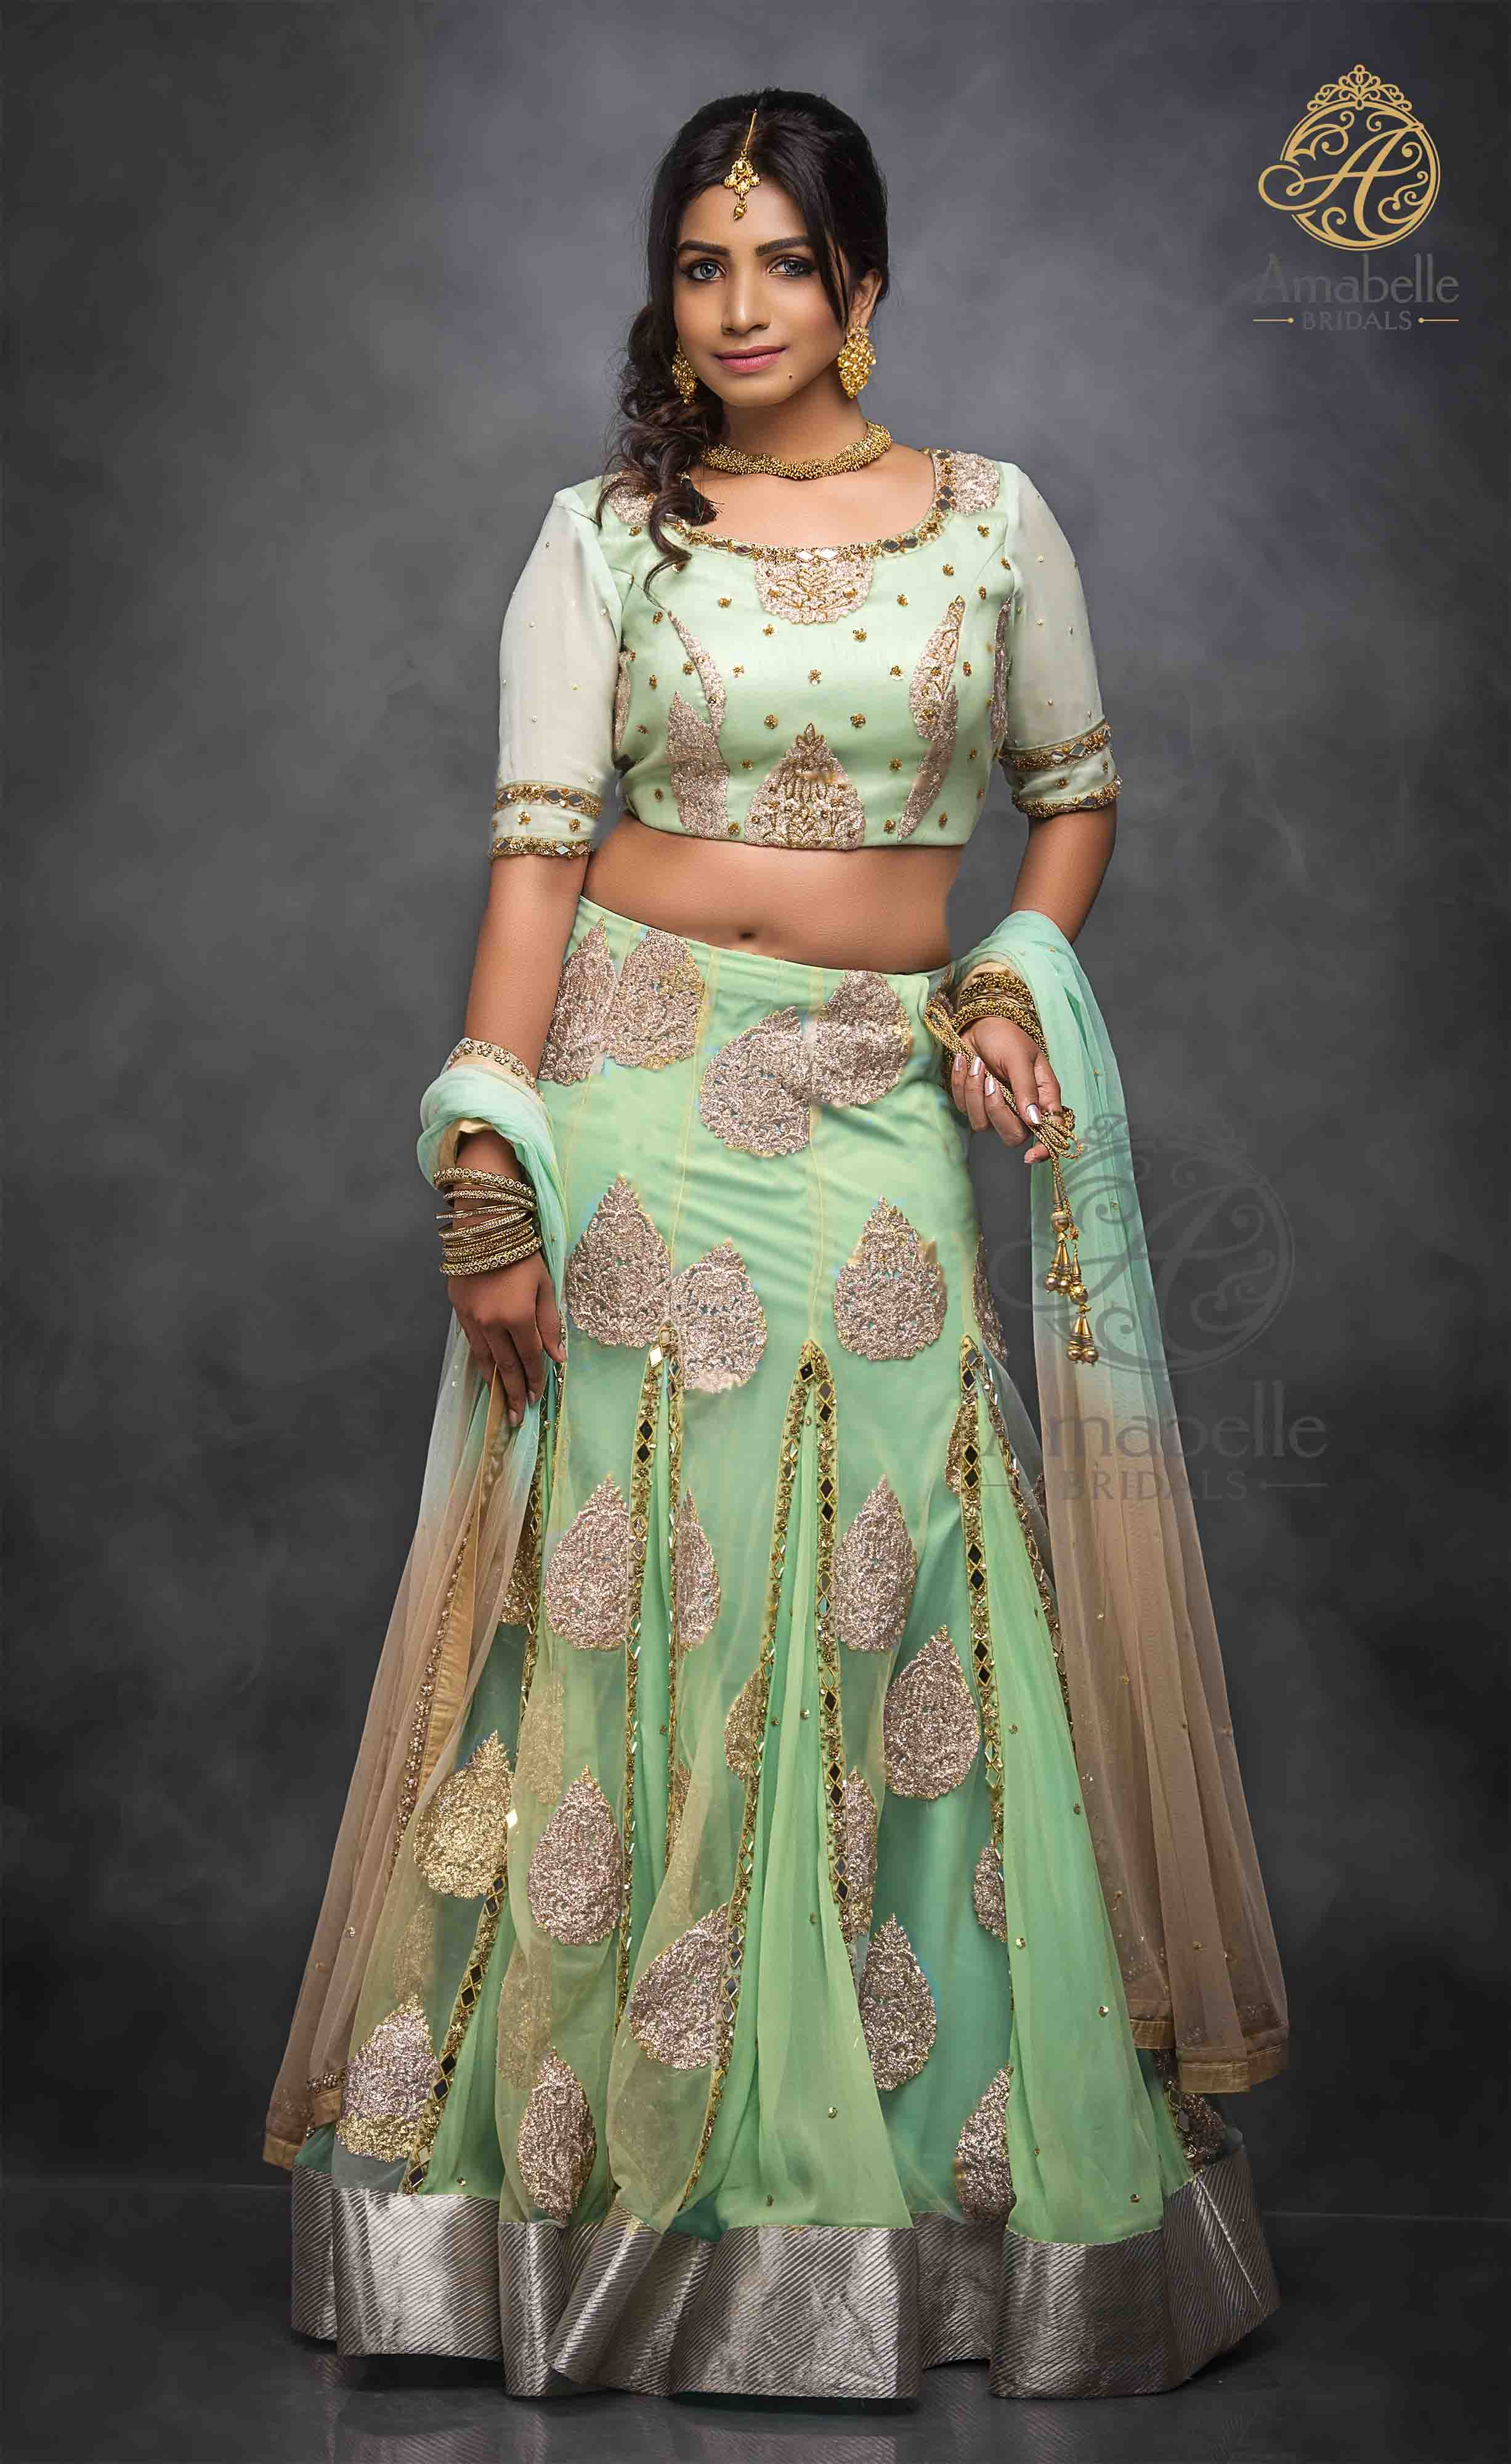 Hand embroidered peppermint green lehenga choli